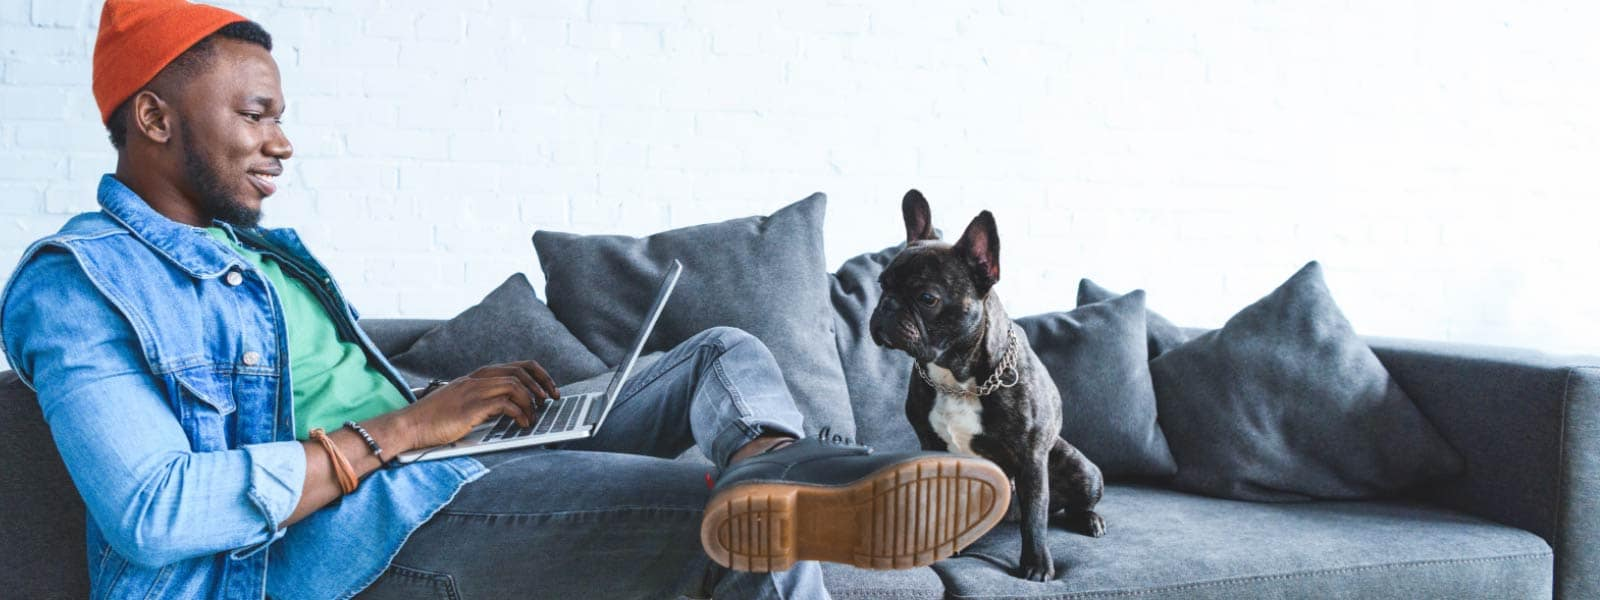 a black man in a denim button-up shirt with a red cap sits on a grey couch, with his laptop in his lap and a black French bulldog beside him, indicating he is browsing online and others may be able to view his IP address